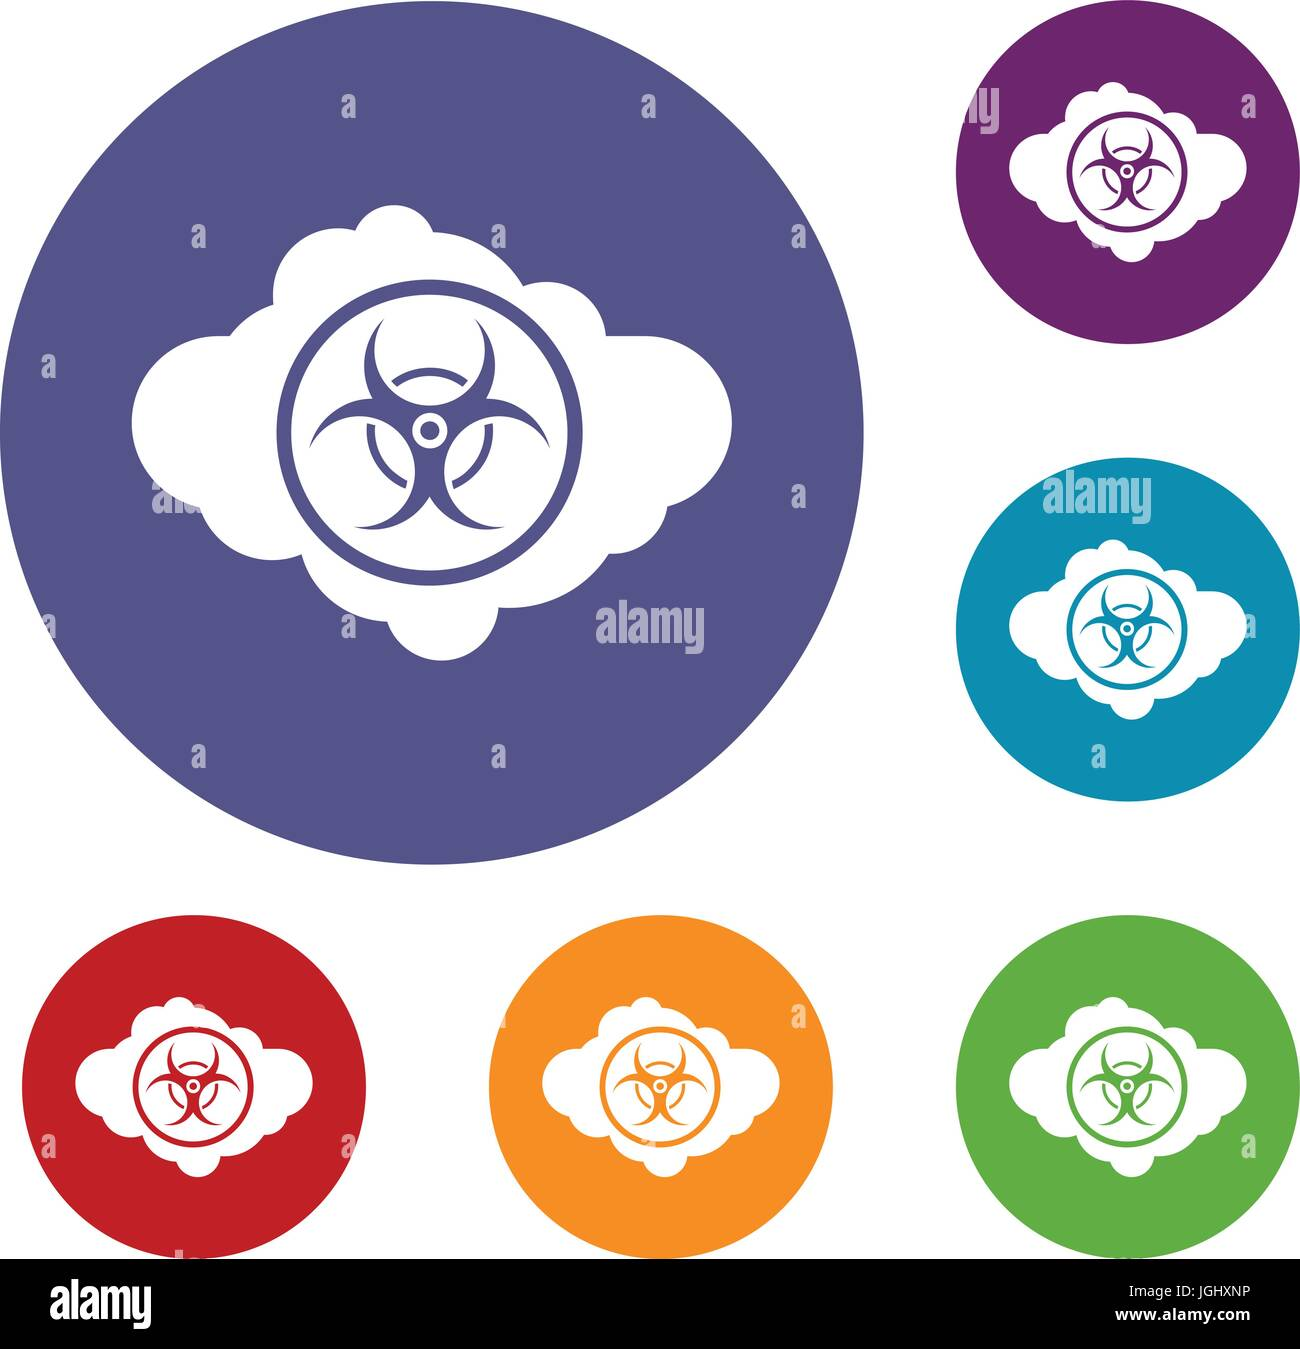 Cloud With Biohazard Symbol Icons Set Stock Photo Royalty Free